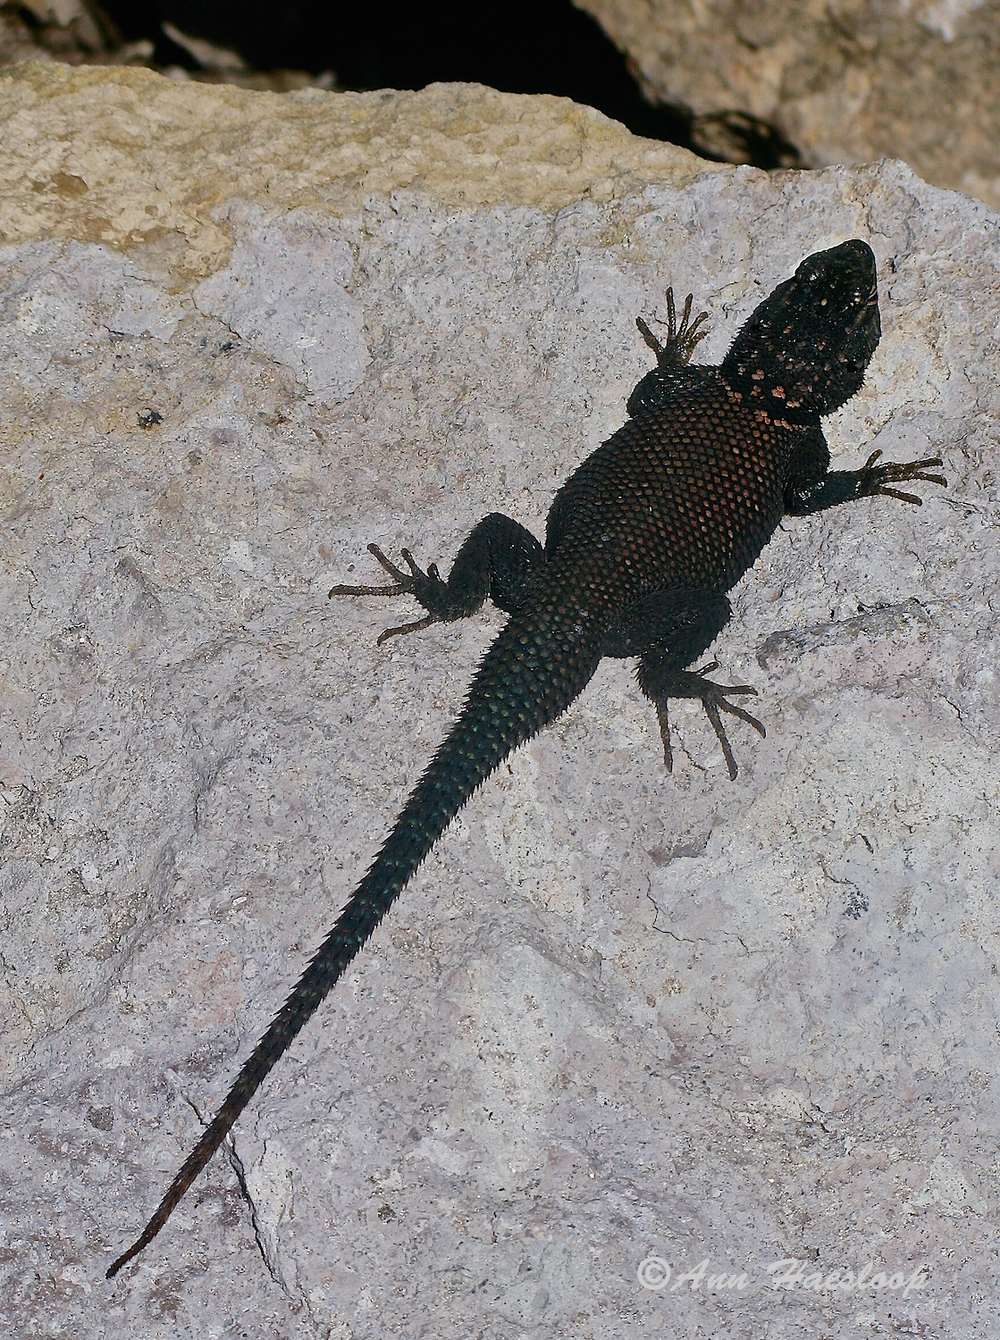 Black Spiney Lizzard (we think).